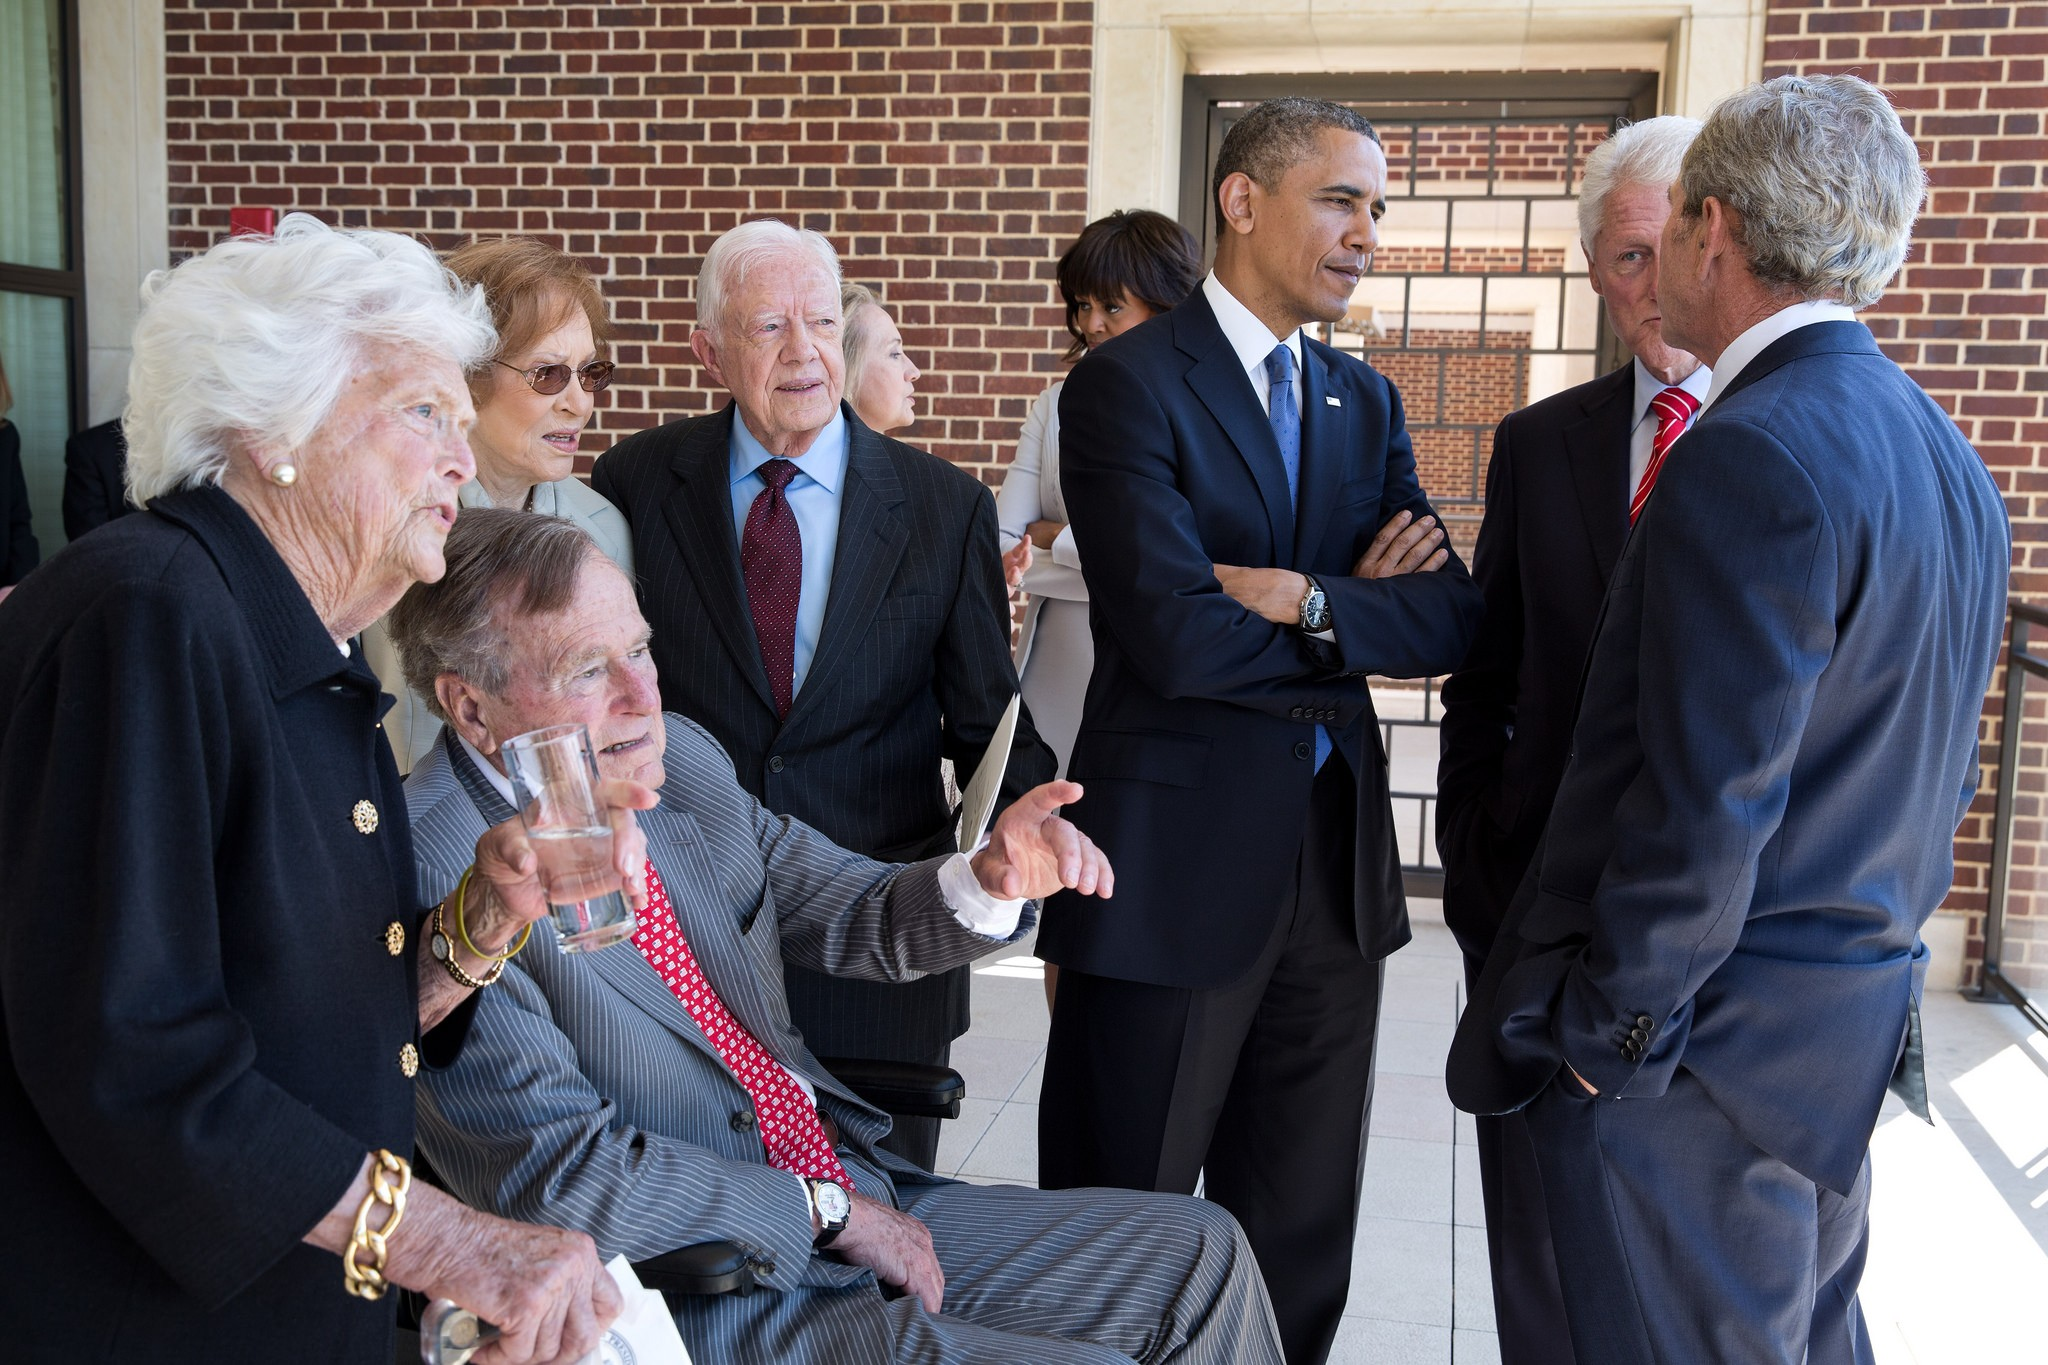 Bushes with other past Presidents and First Ladies at Bush Presidential Library